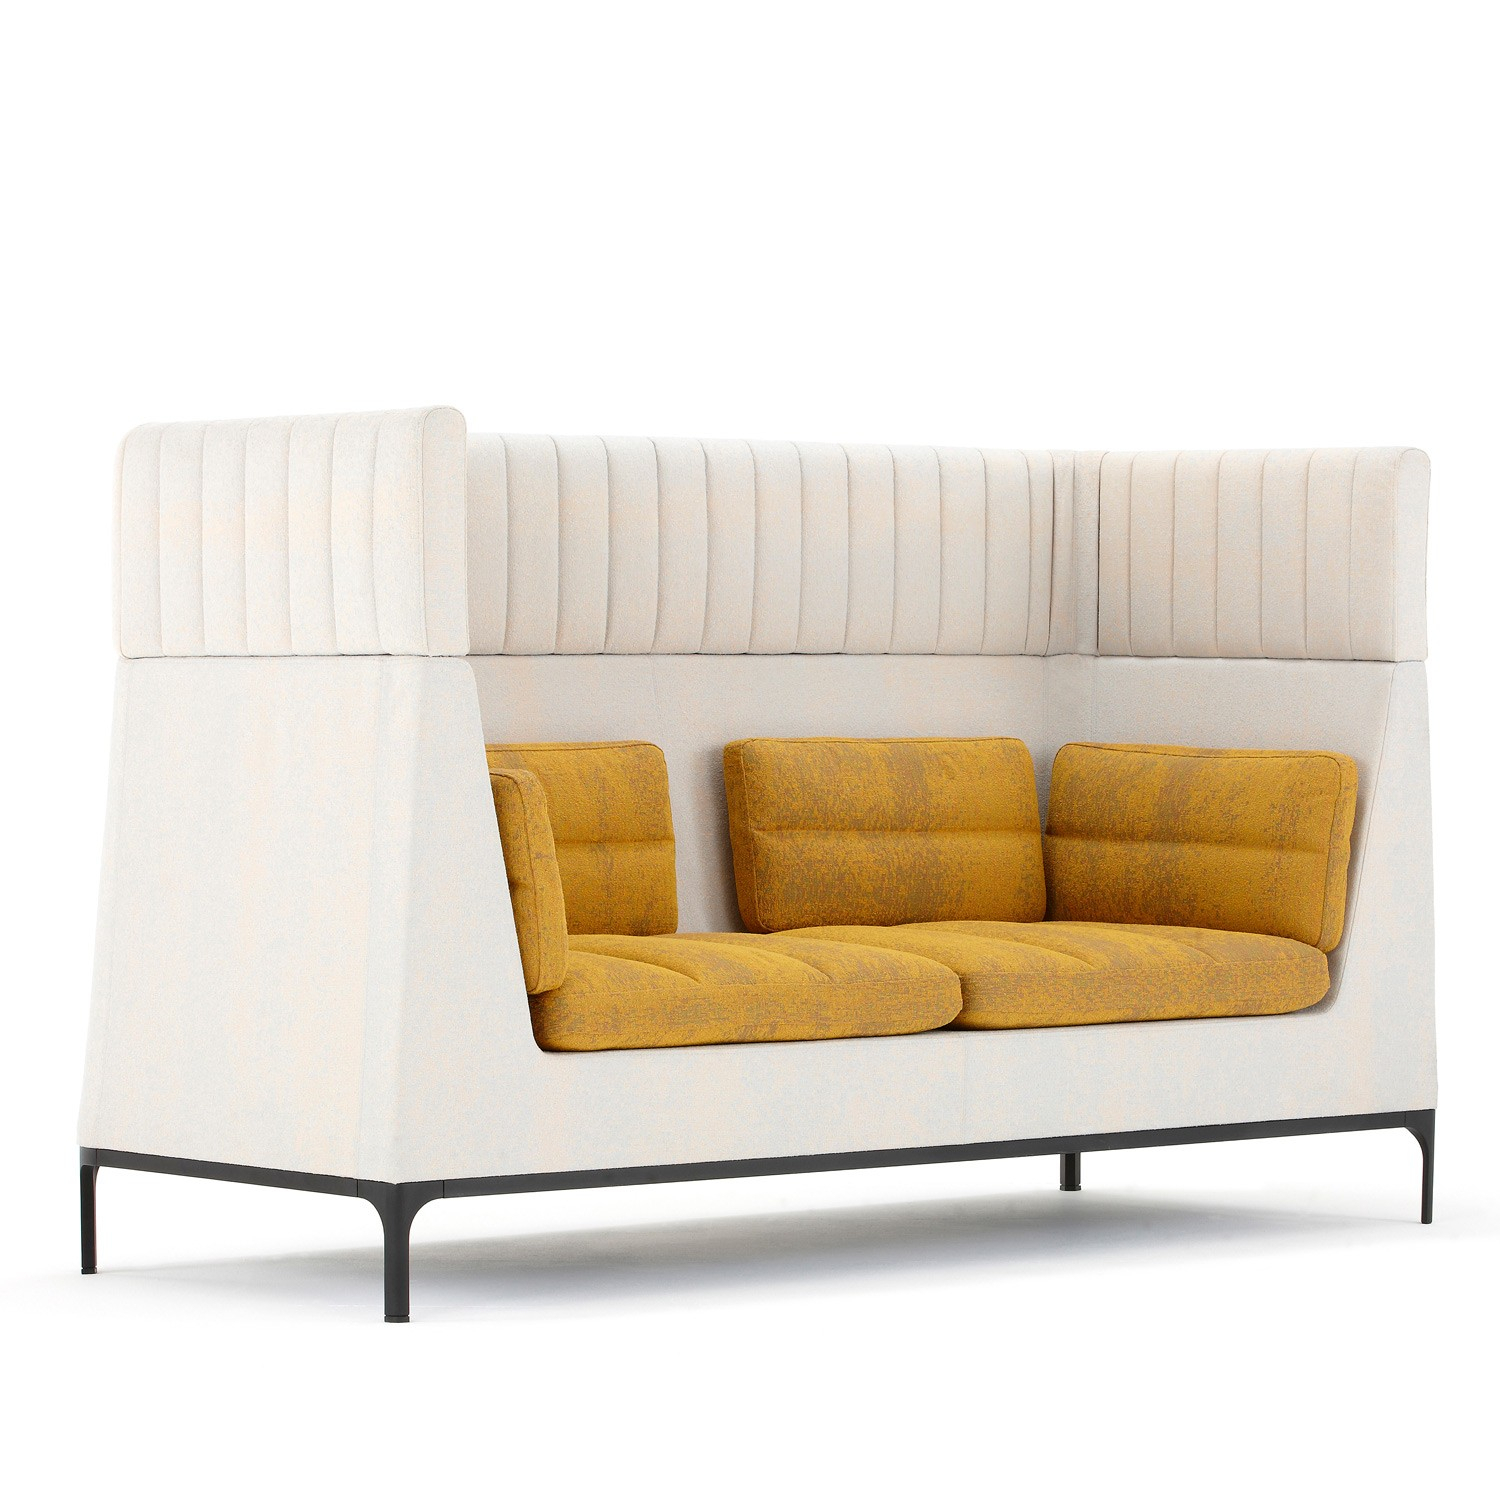 Haven High Back Sofa | Haven Acoustic Soft Seating | Apres Furniture regarding Haven Sofa Chairs